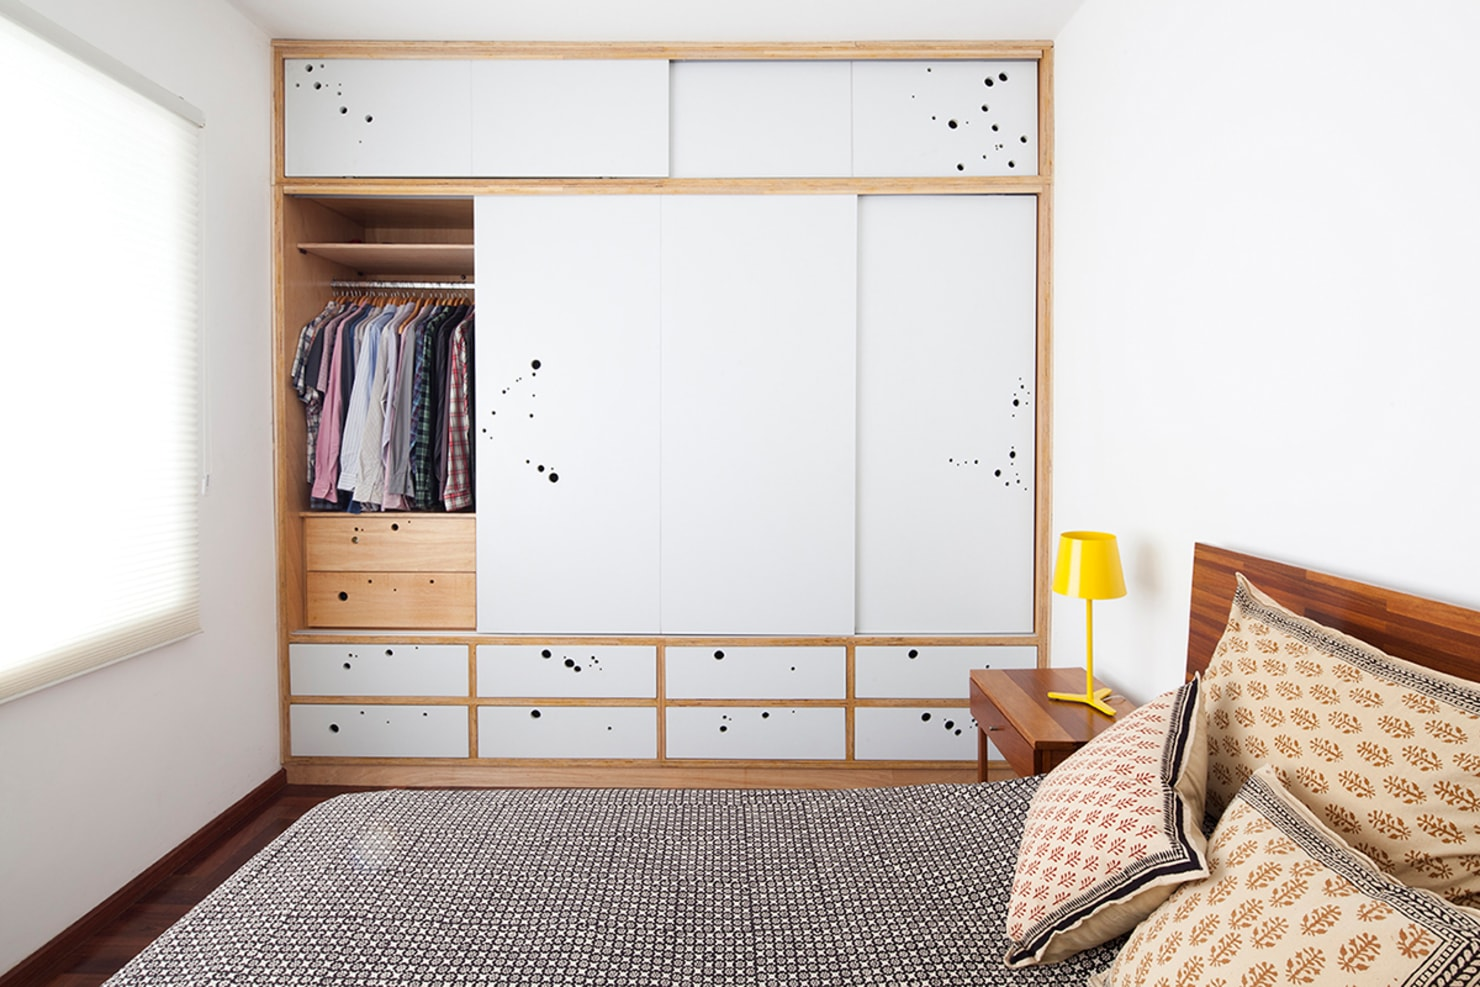 21 pictures of wardrobes you can easily copy in one weekend